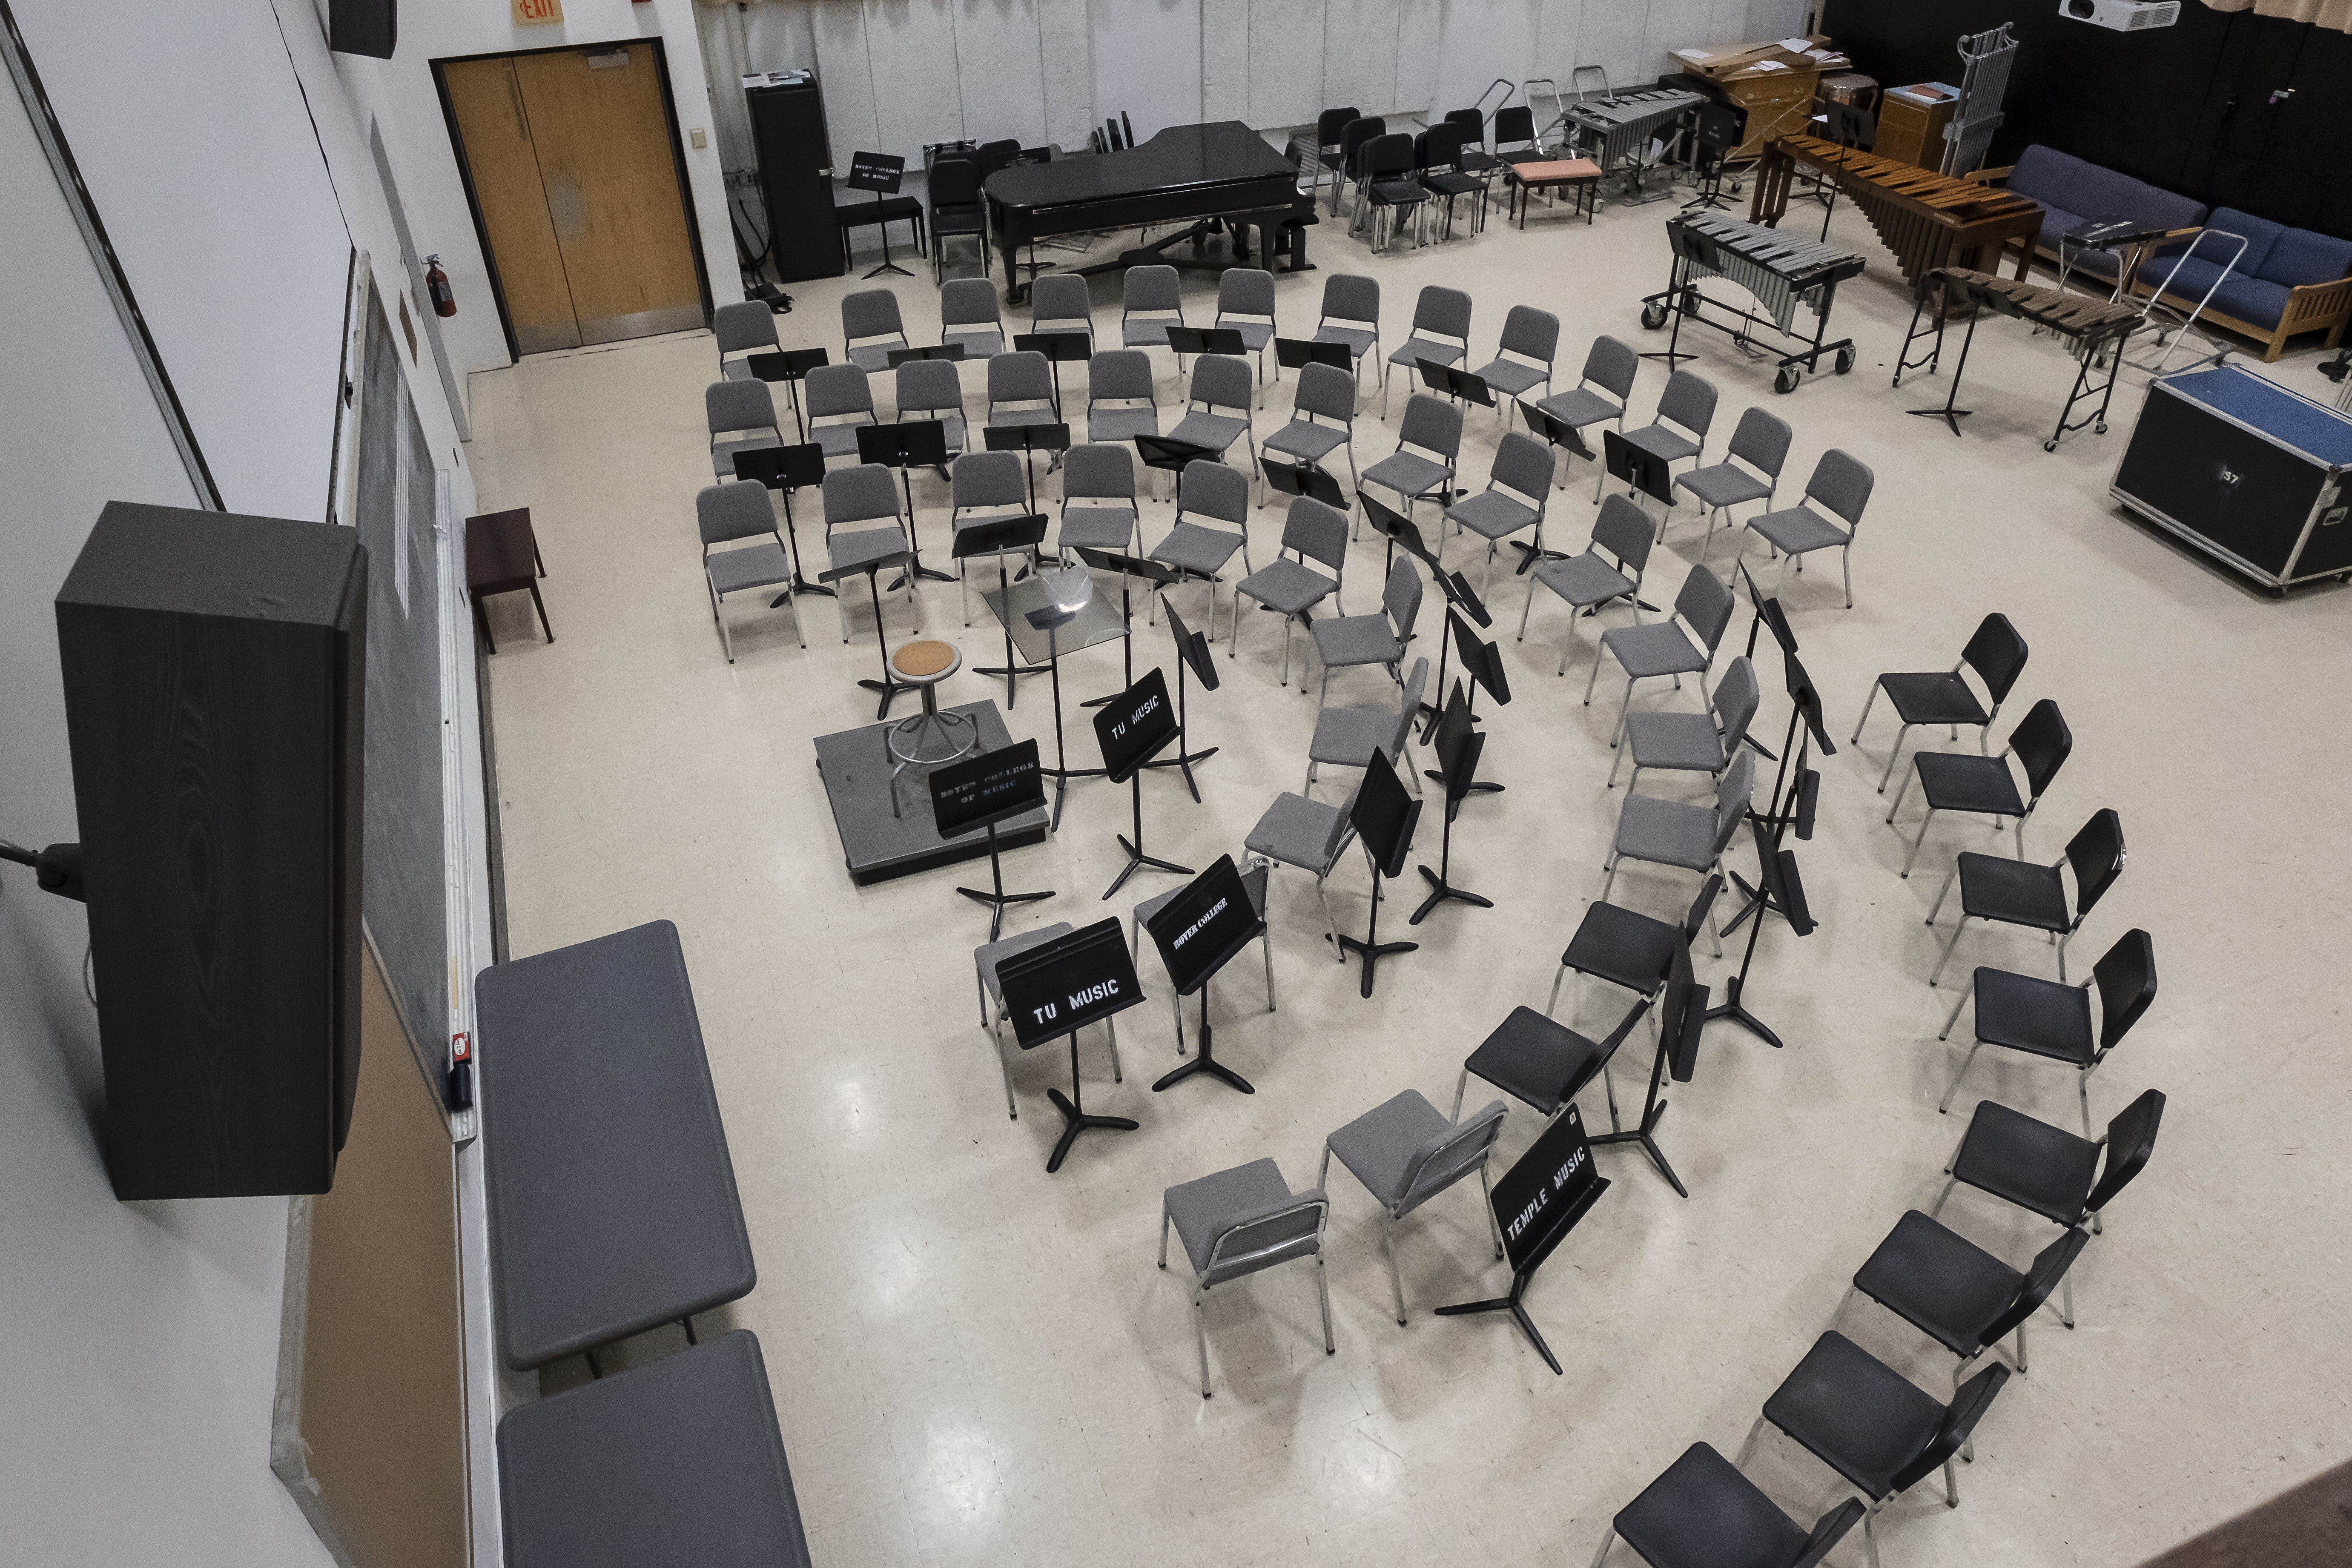 Aerial photo of large rehearsal room, conductor's podium with three rows of seats in a semicircle around it